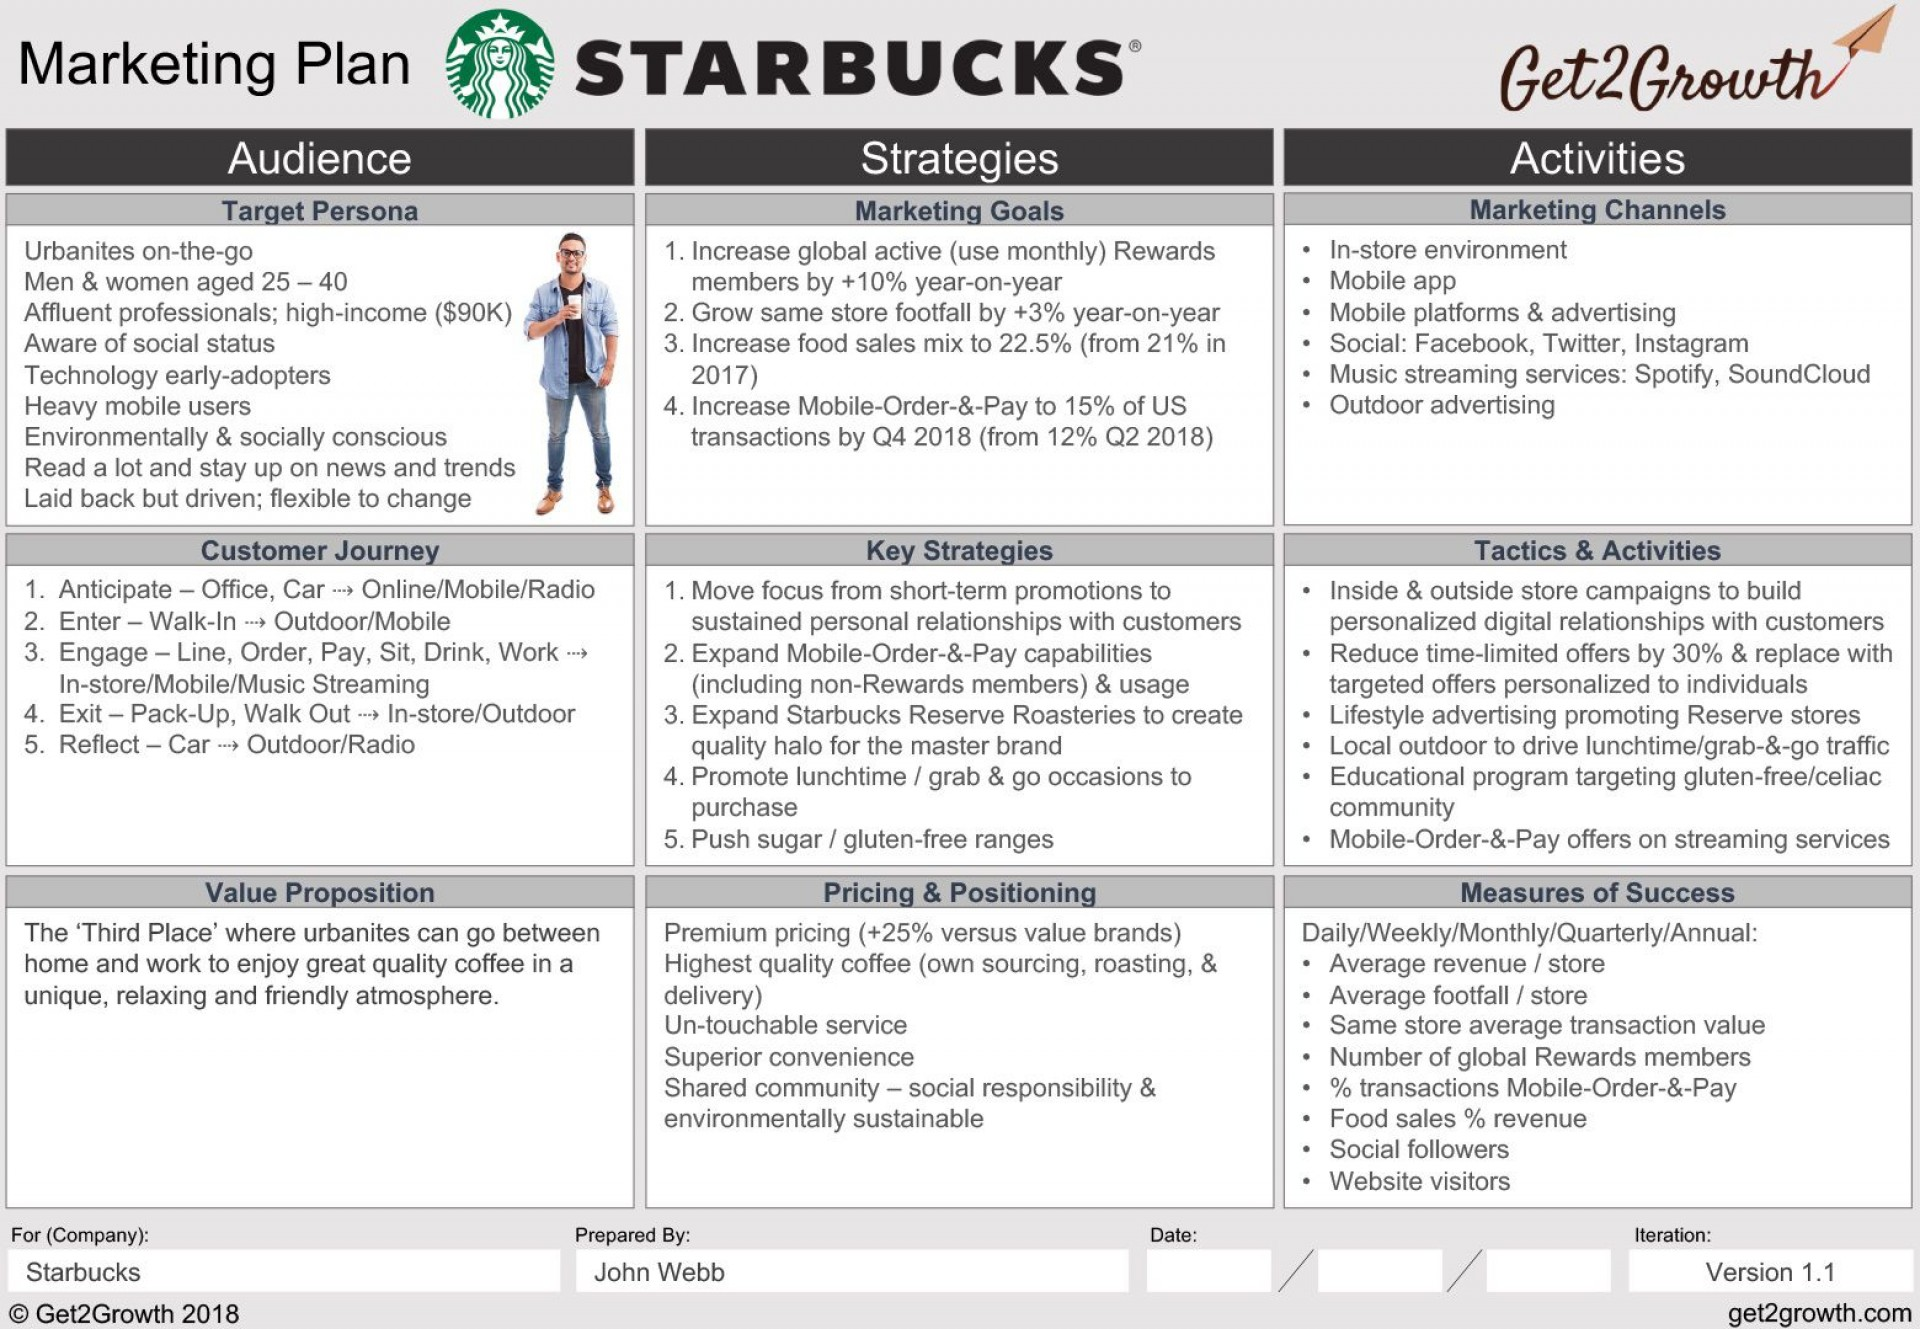 008 Magnificent Marketing Action Plan Template Design  Ppt Excel Mix Example1920